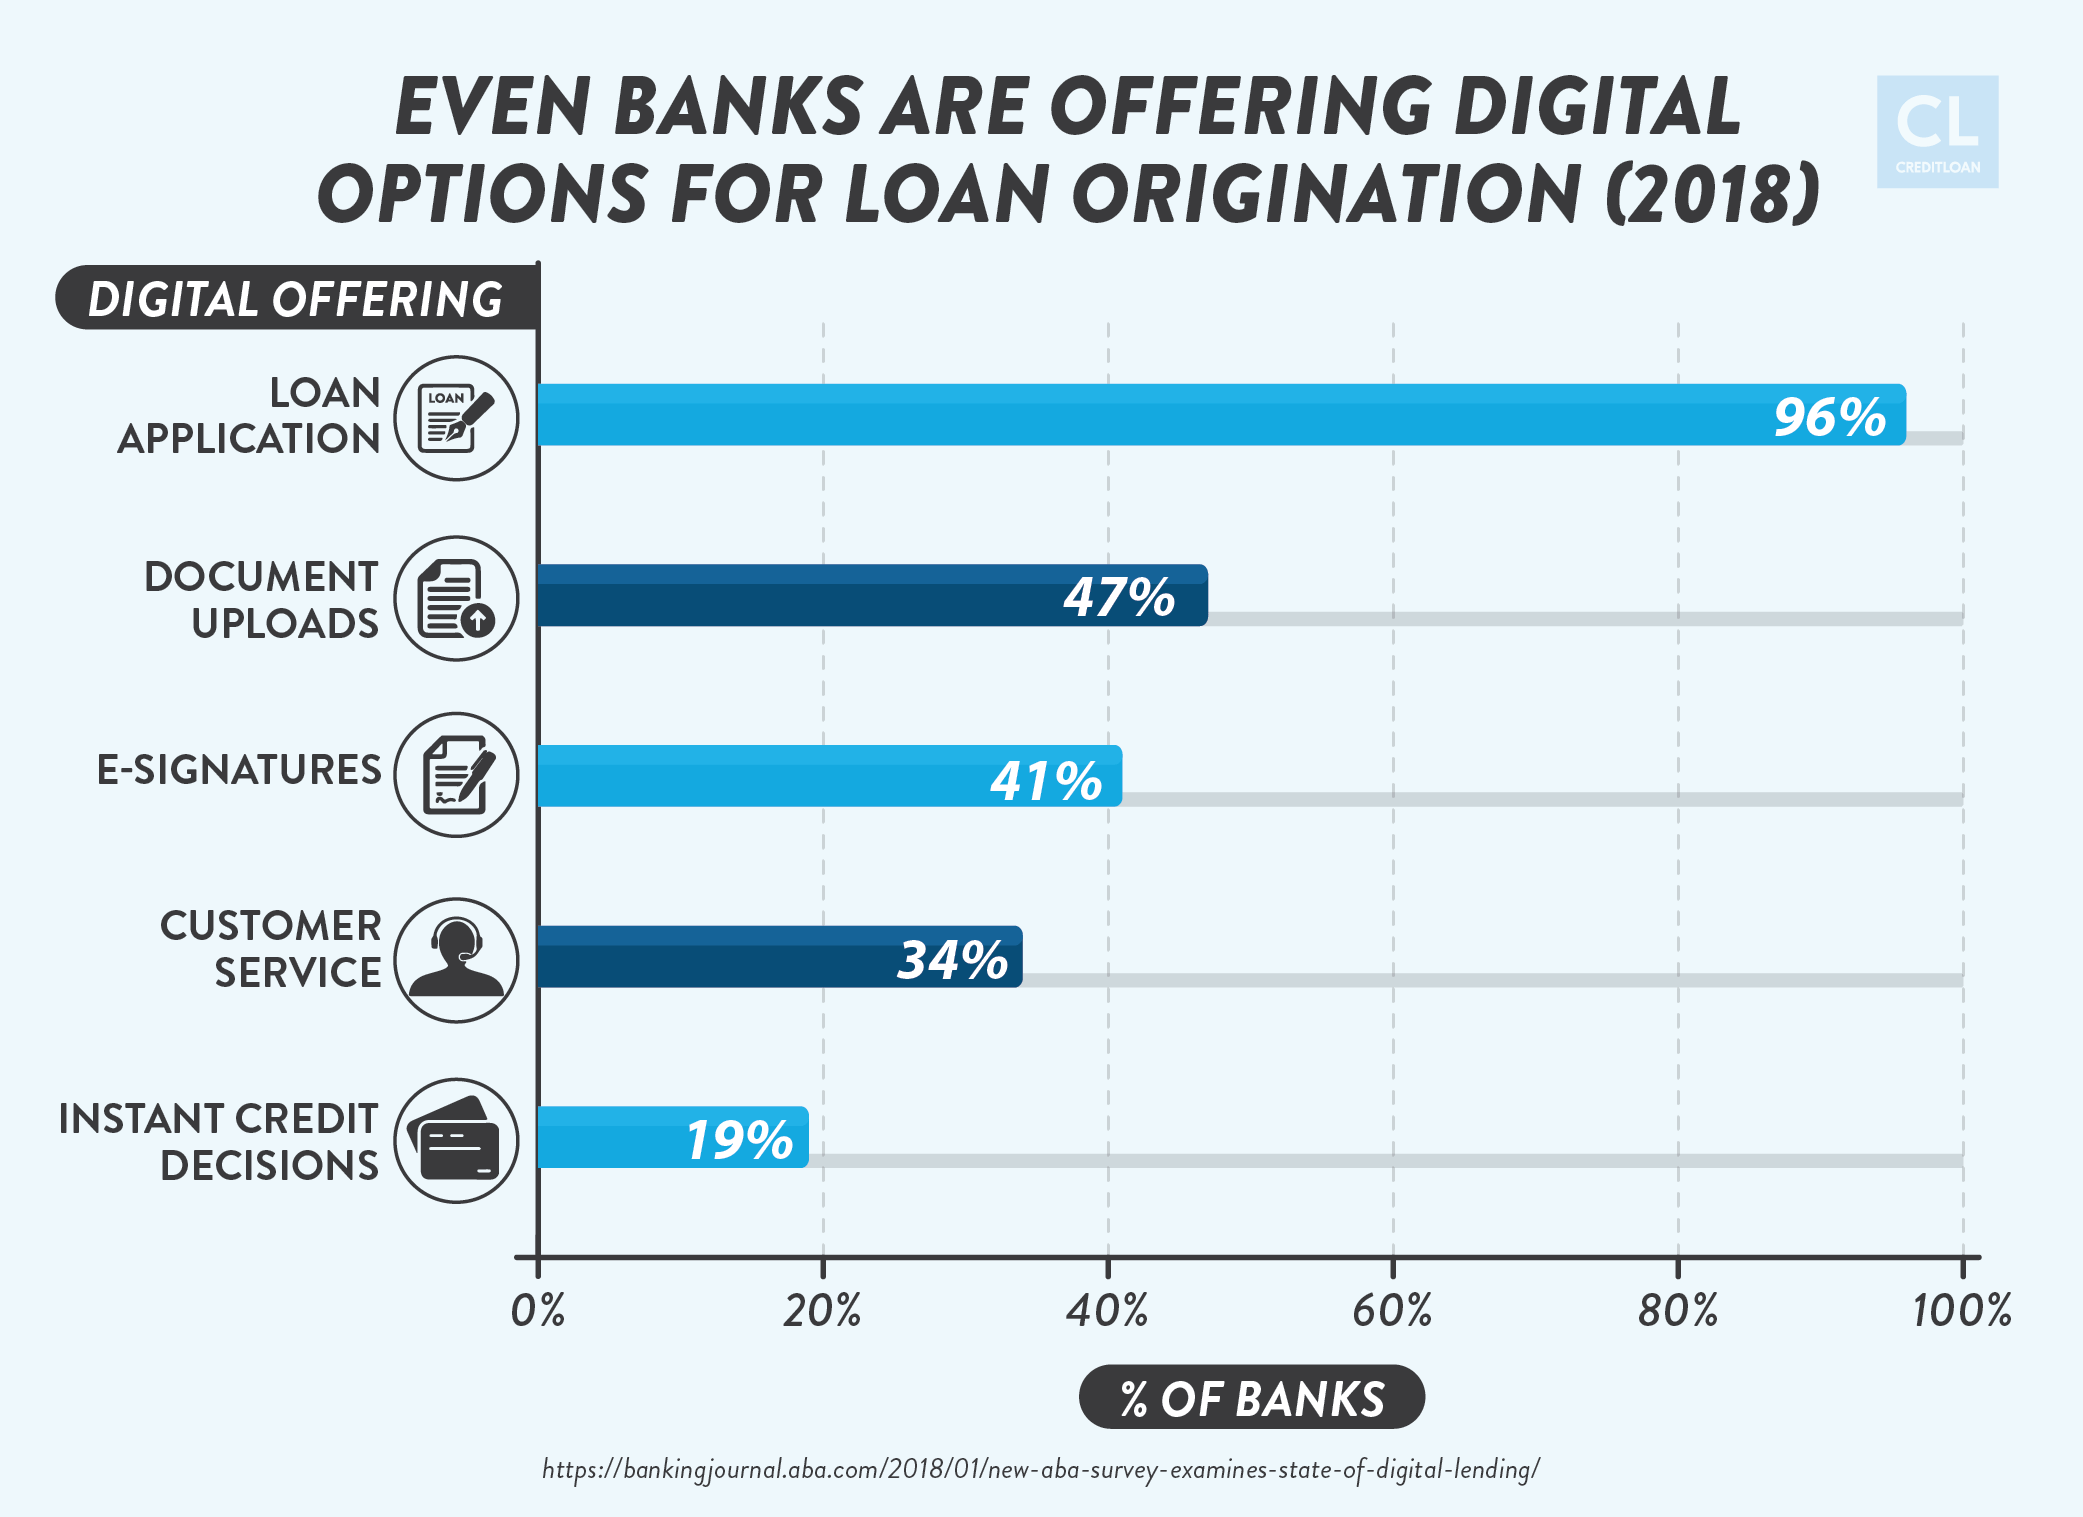 2018 Digital Options for Loan Origination